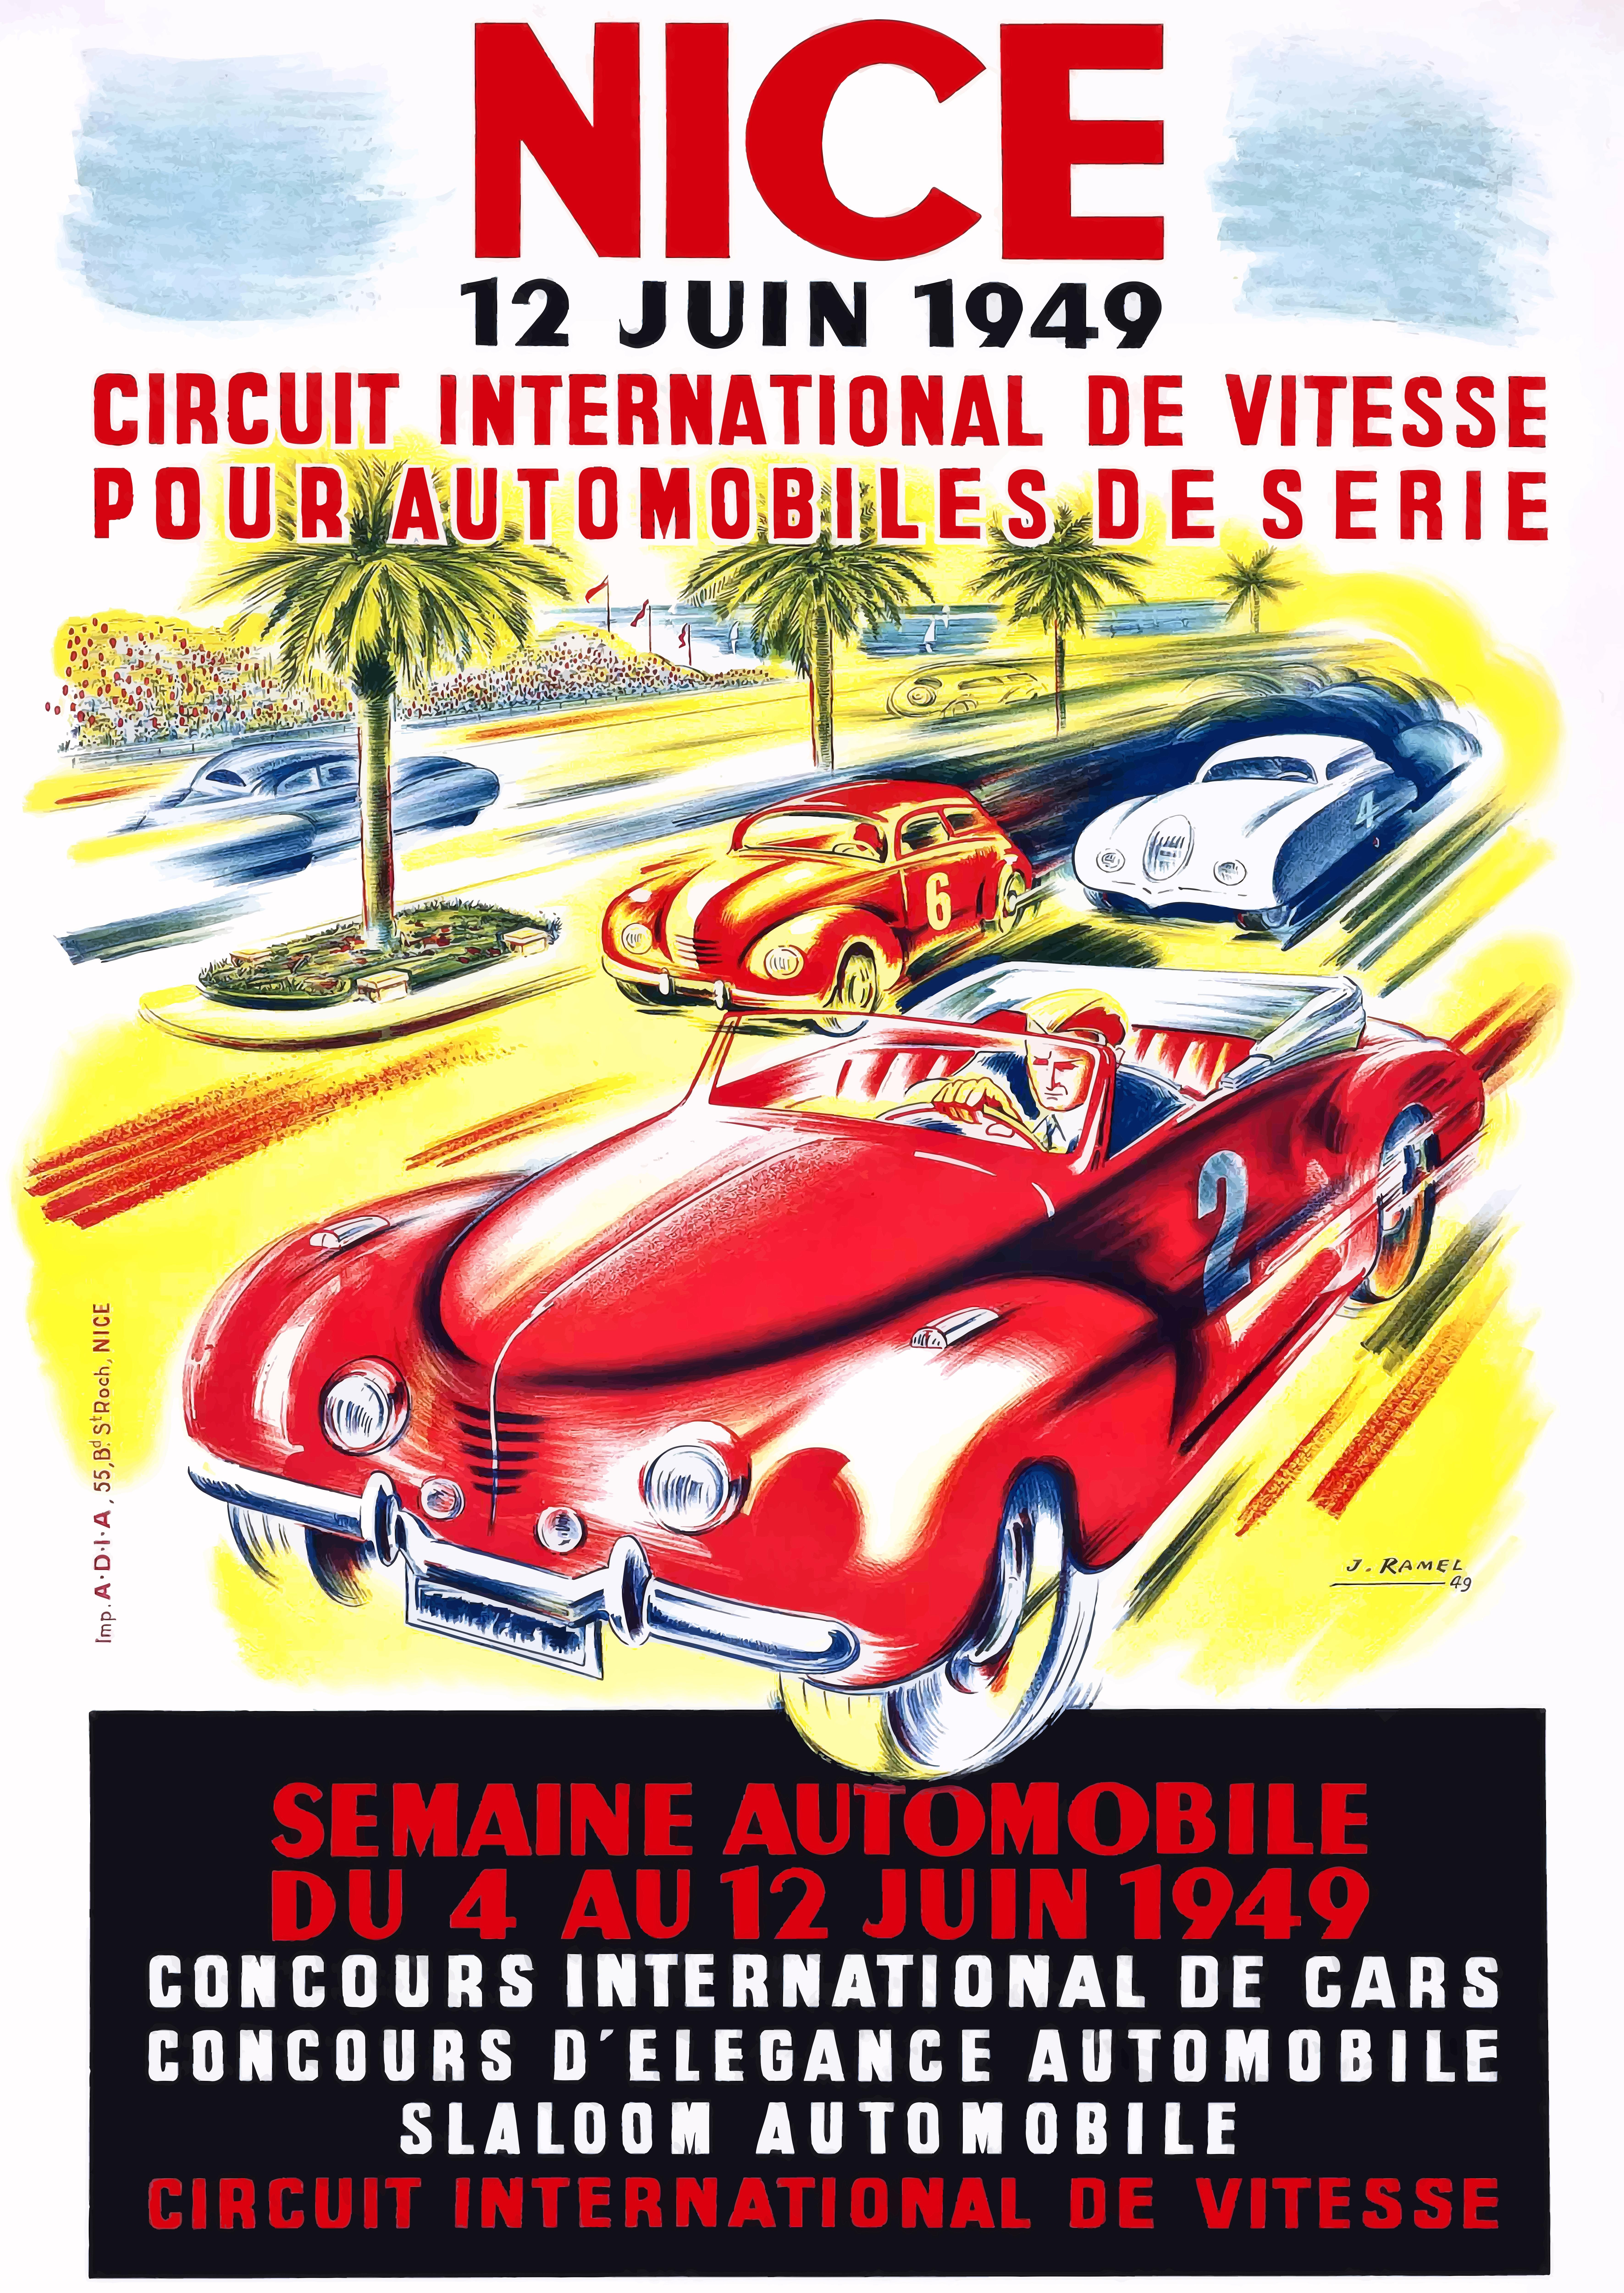 1949 Nice France Circuit Automobile Race Poster By Retro Graphics Vintage Racing Poster Circuit Automobile Racing Posters